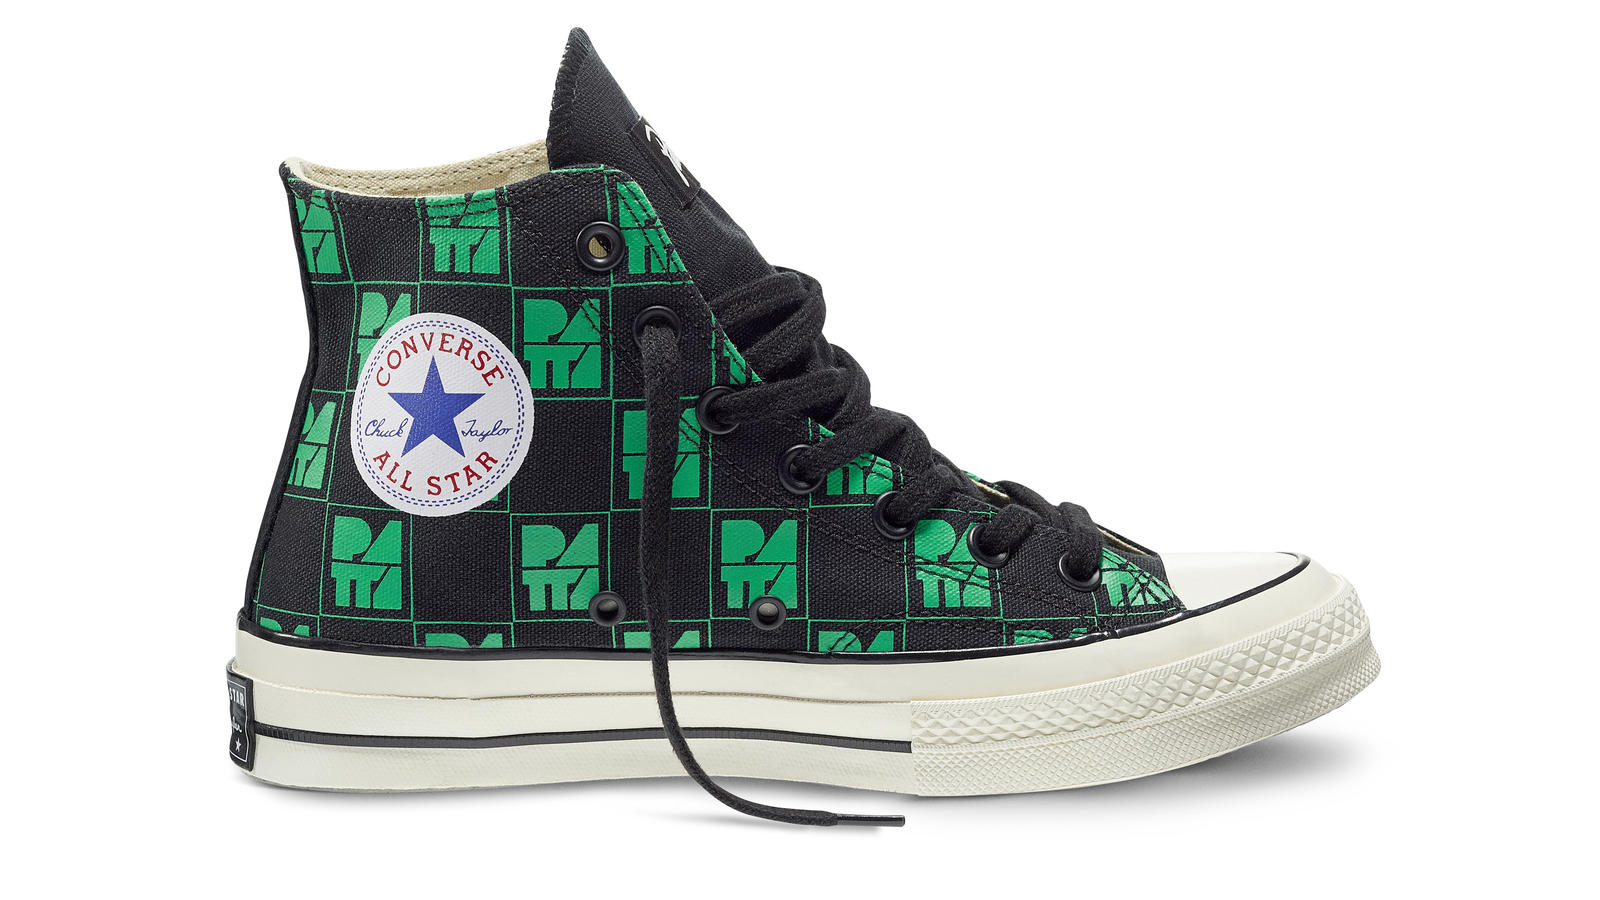 Converse All Star Ct70 Patta10 Black Green Original